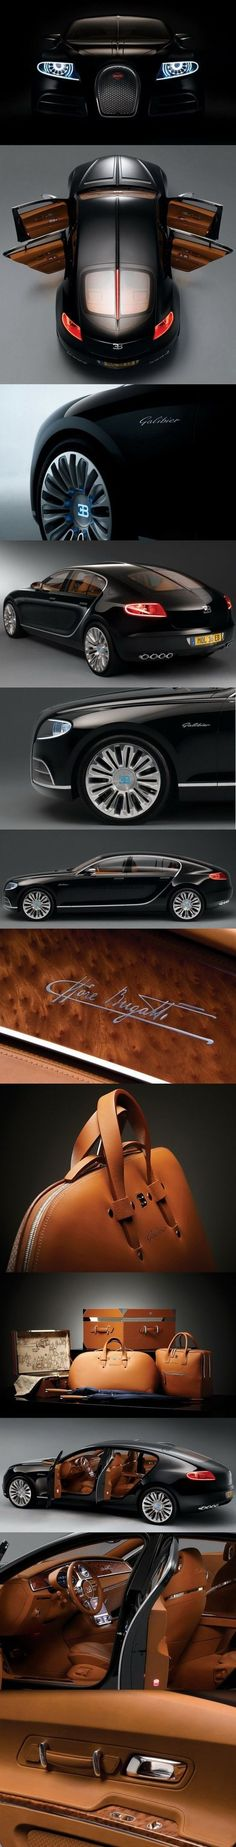 """ALL NEW """" 2017 BUGATTI GALIBIER"""", 2017 Concept Car Photos and Images, 2017 Cars"""